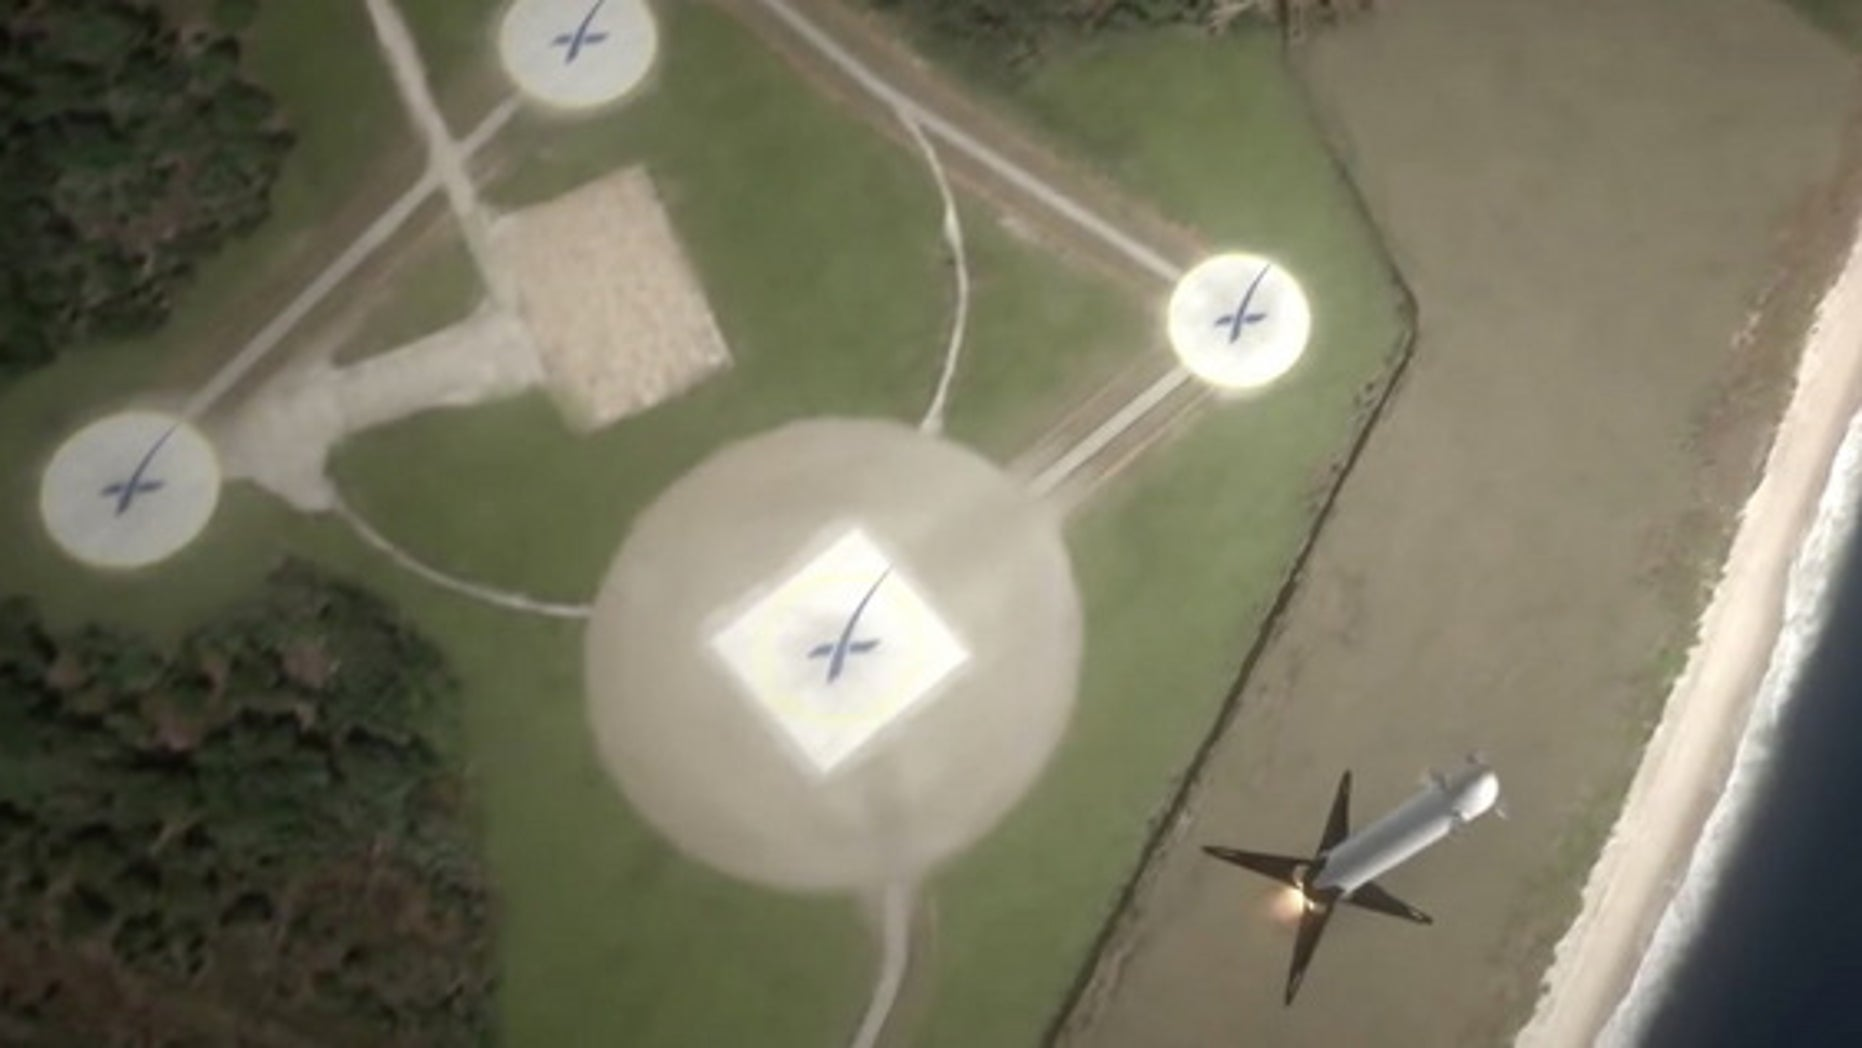 SpaceX is developing reusable Falcon 9 rockets to make spaceflight more affordable. The company plans to land the first stage of its Falcon 9 rockets (shown in this animation still) at its Landing Site 1 at the Cape Canaveral Air Force Station